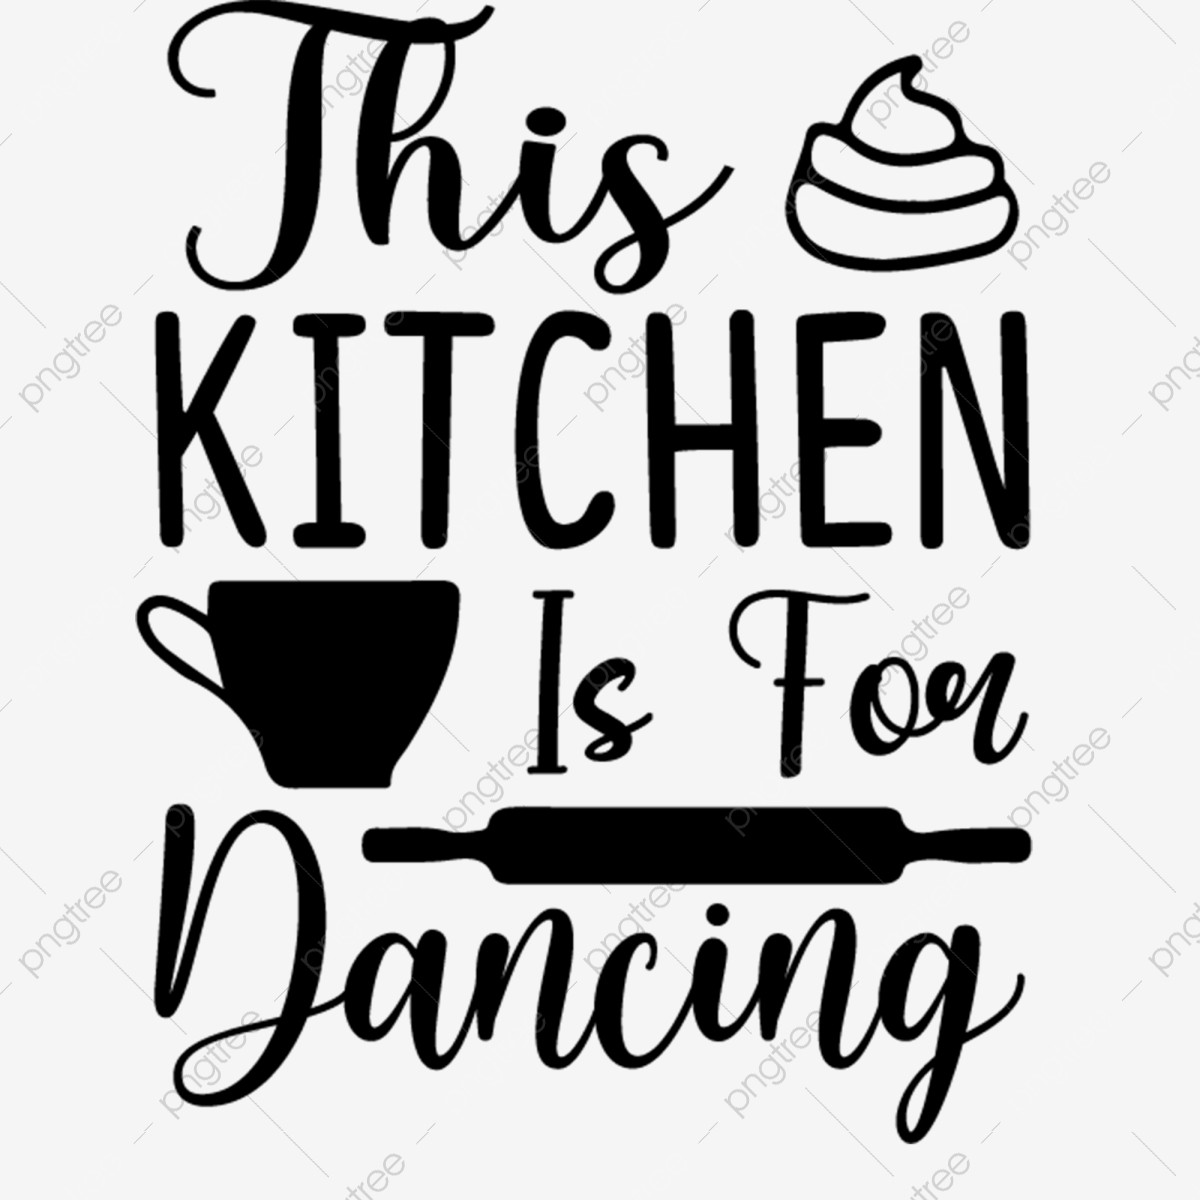 This Kitchen Is For Dancing Kitchen Bundle Set Kitchen Bundle Home Depot Kitchen Bundle Stardew Png And Vector With Transparent Background For Free Download